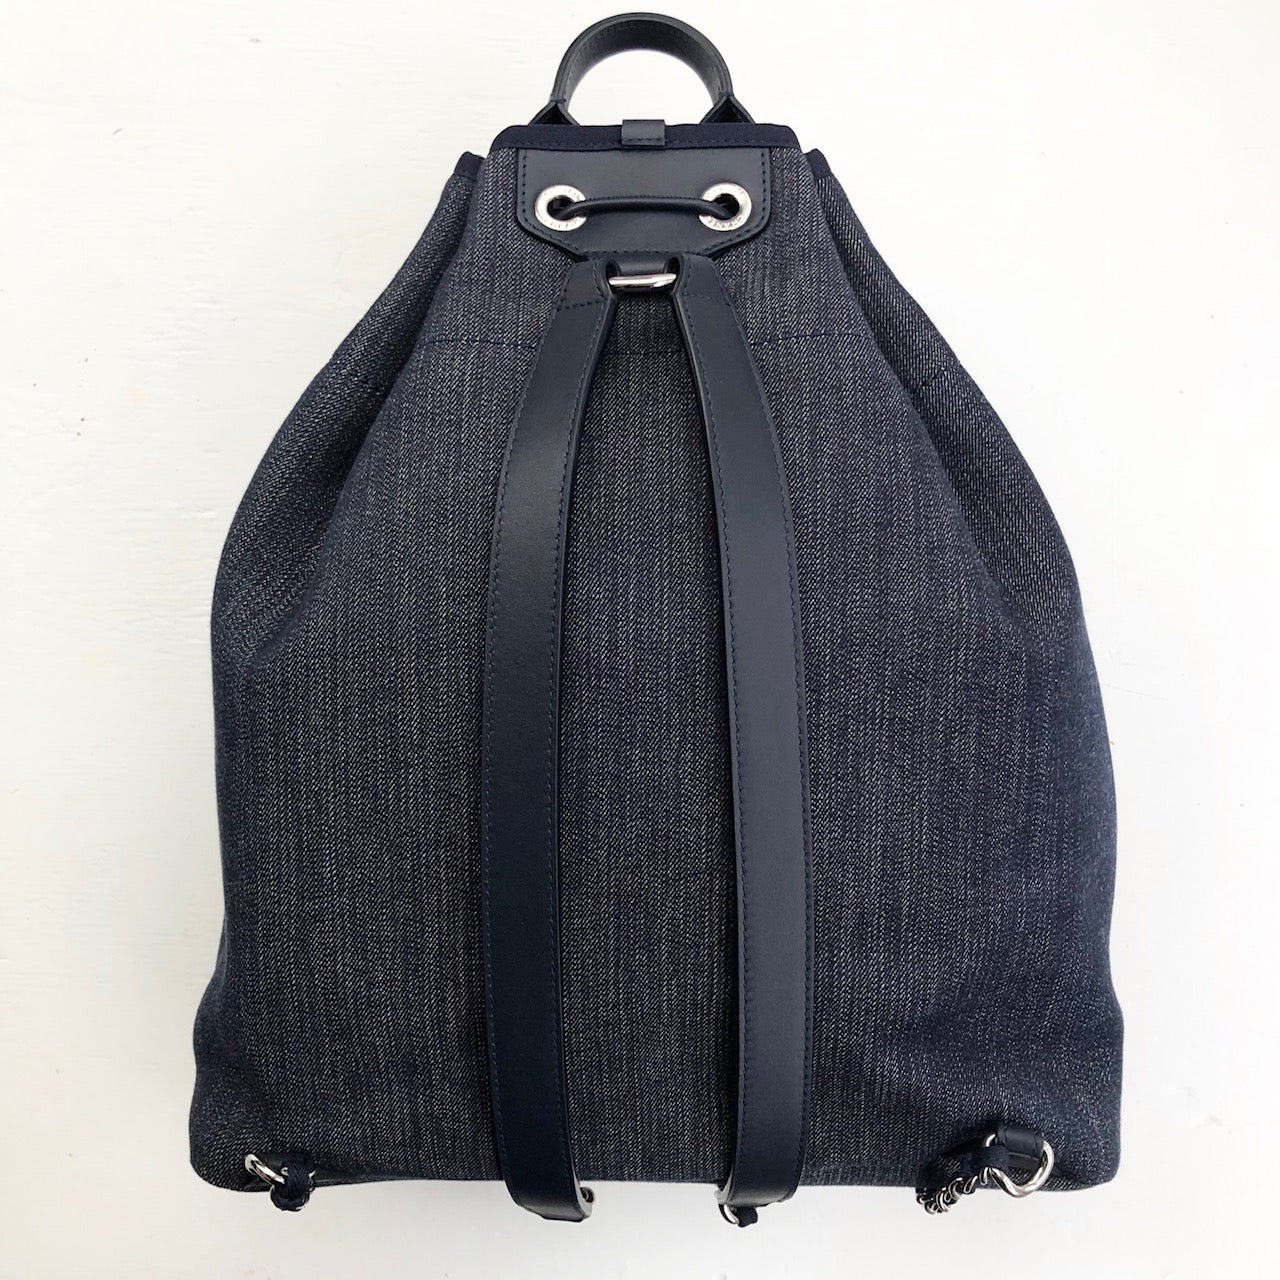 CHANEL Denim Deauville Backpack